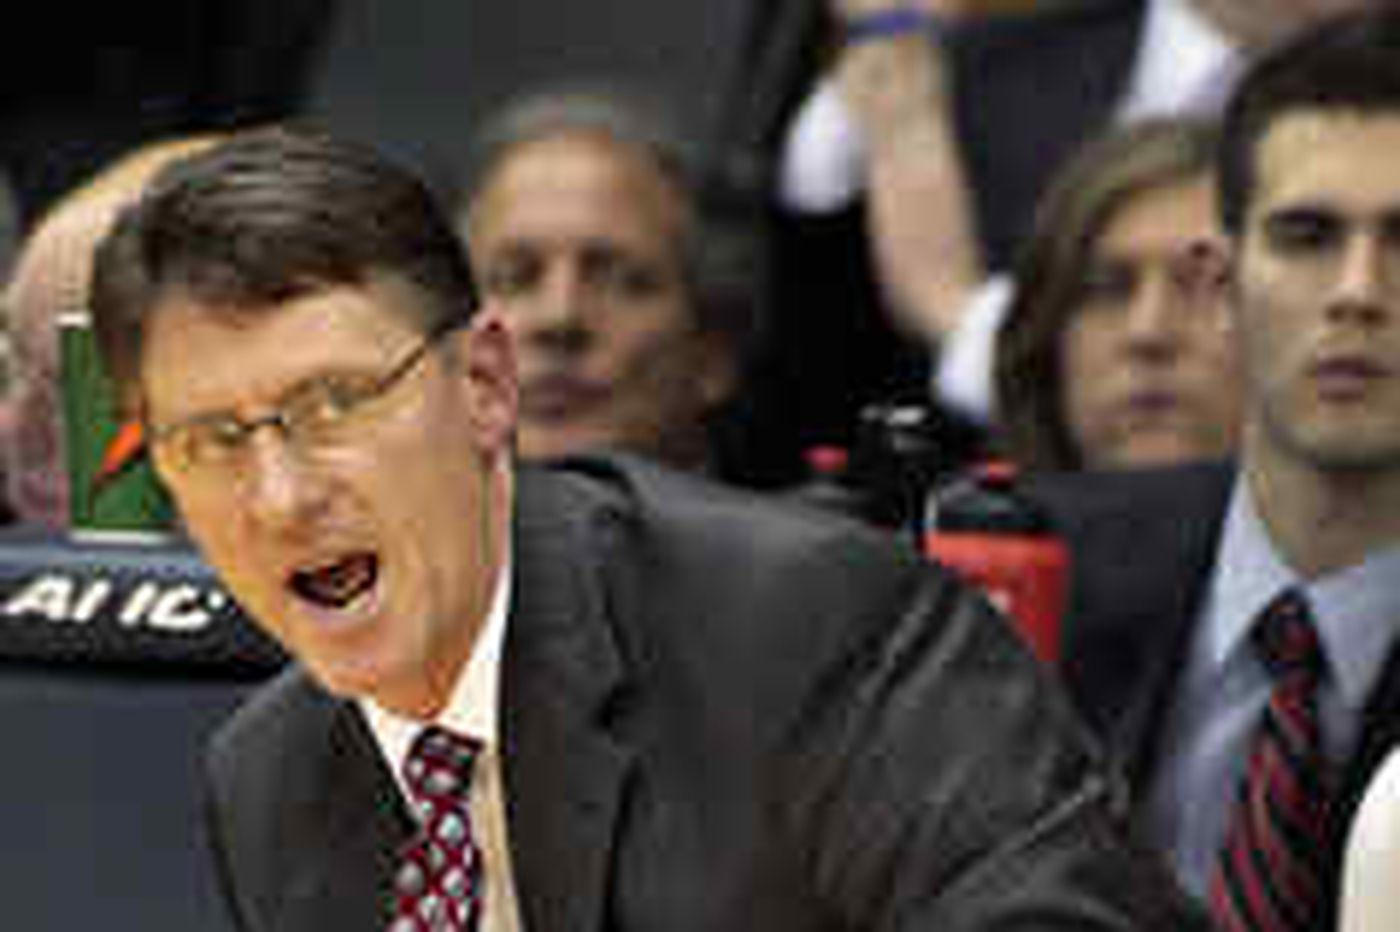 Penn fires basketball coach Glen Miller